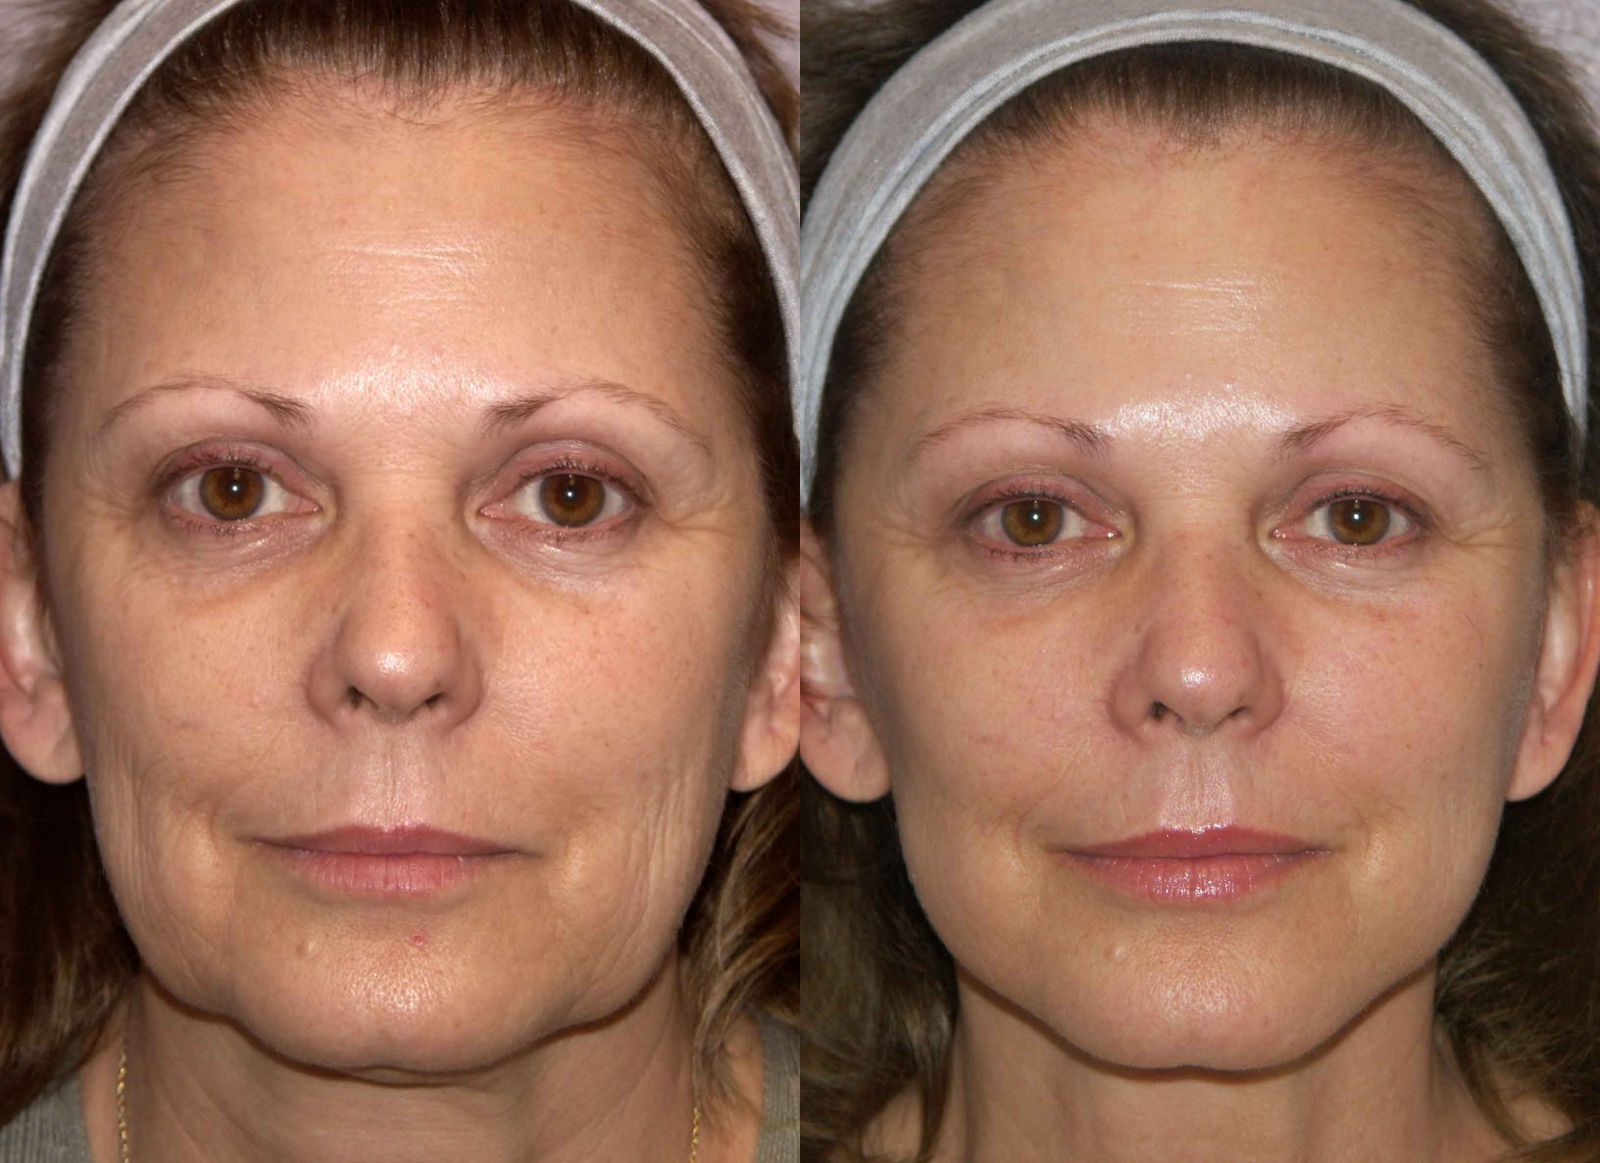 The Mini Face Lift Takes A Little Over An Hour And Recovery Time Is